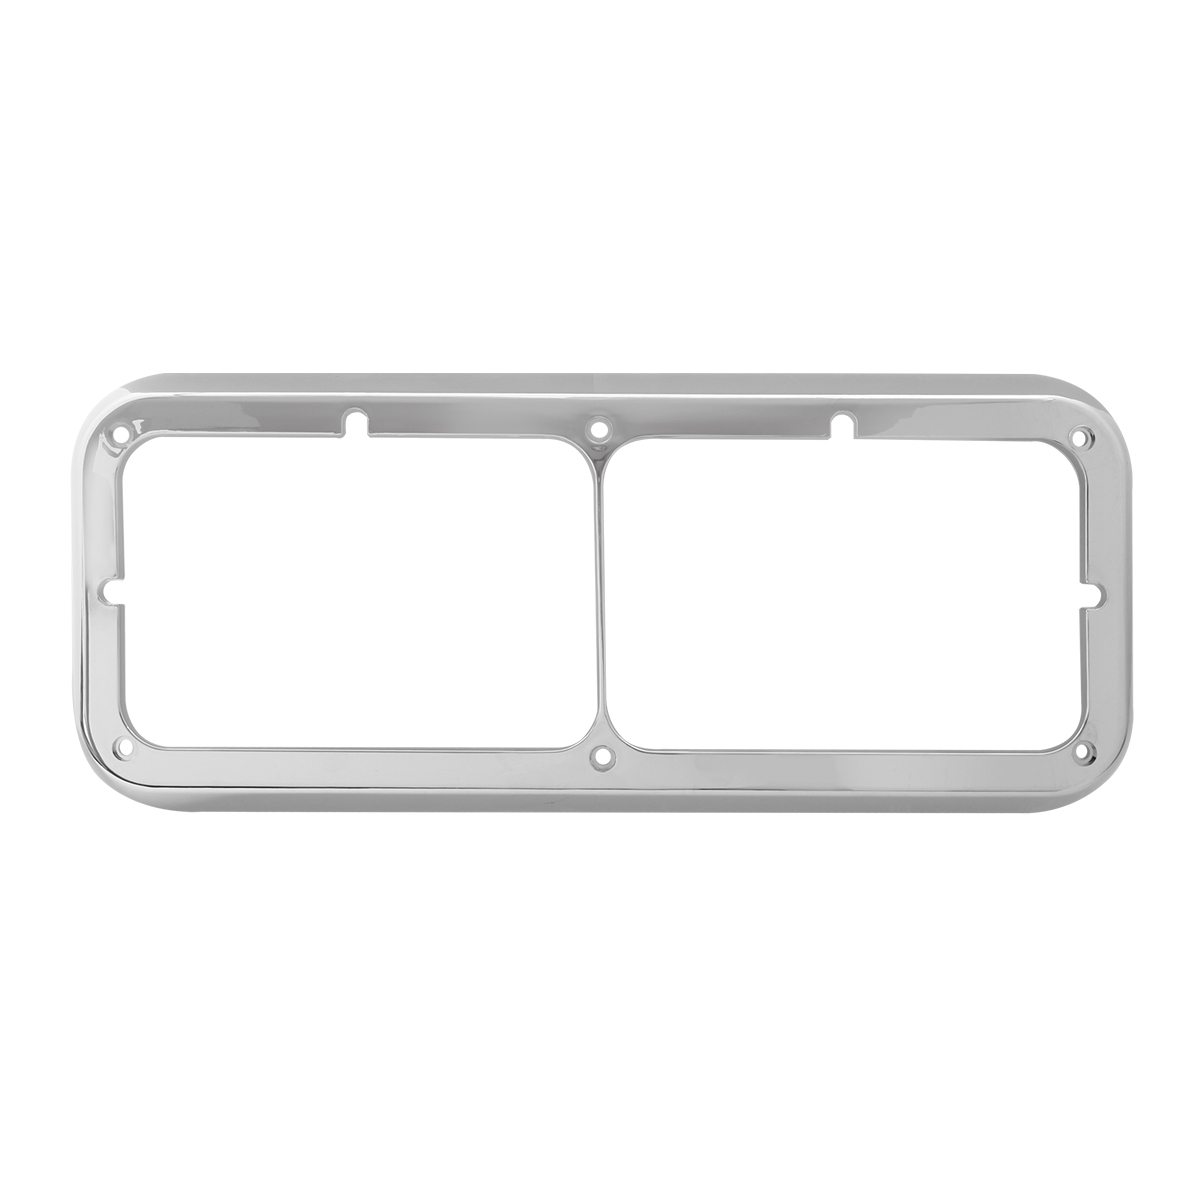 87591 Dual Rectangular Headlight Bezel for Peterbilt, Kenworth & Freightliner